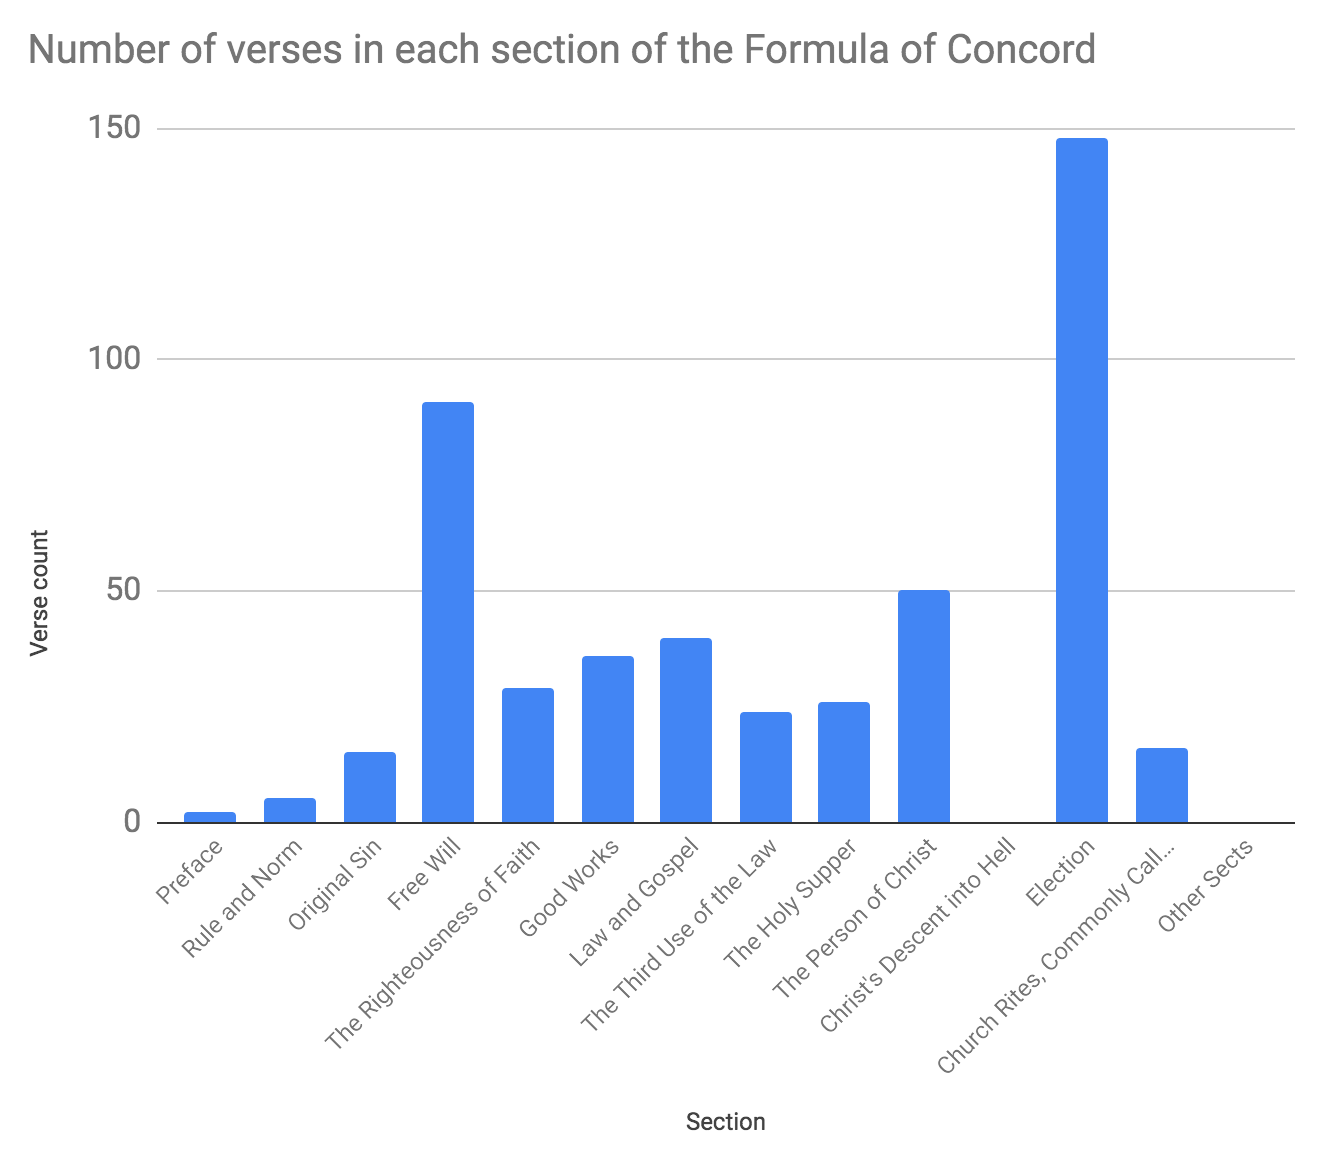 Number of verses in each section of the Formula of Concord